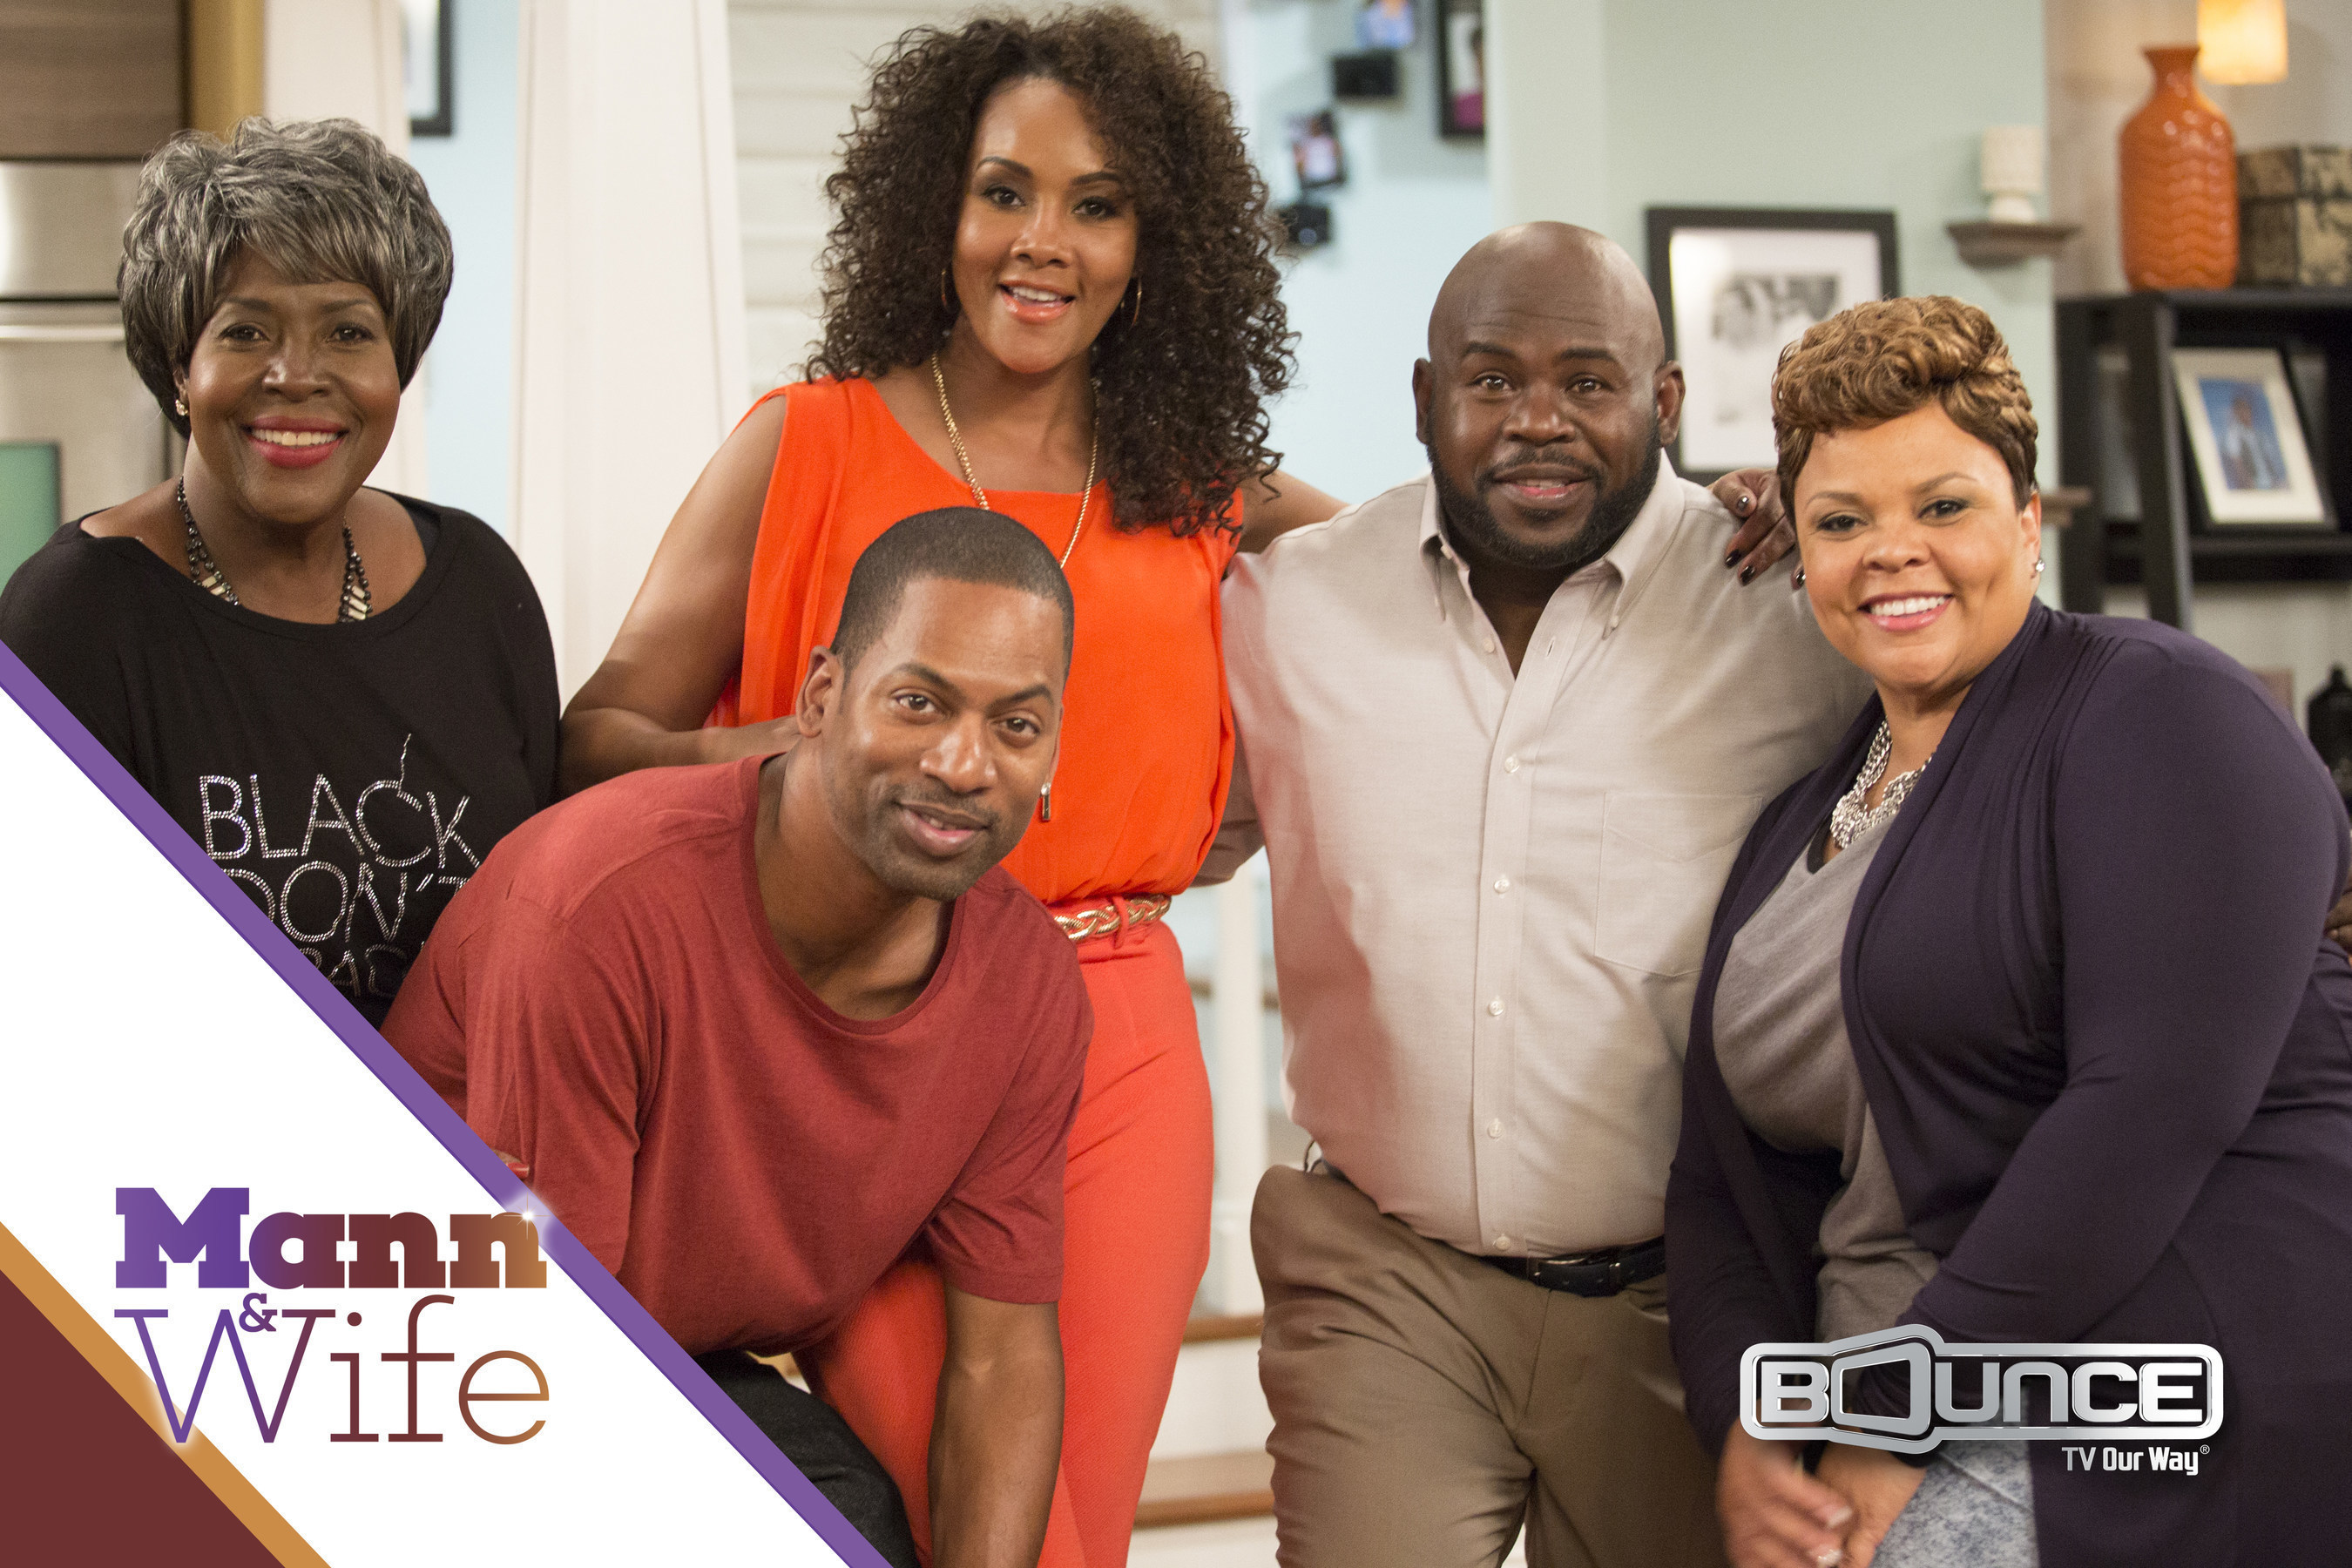 Mann & Wife Viewership Grows in Week Two, Second Episode